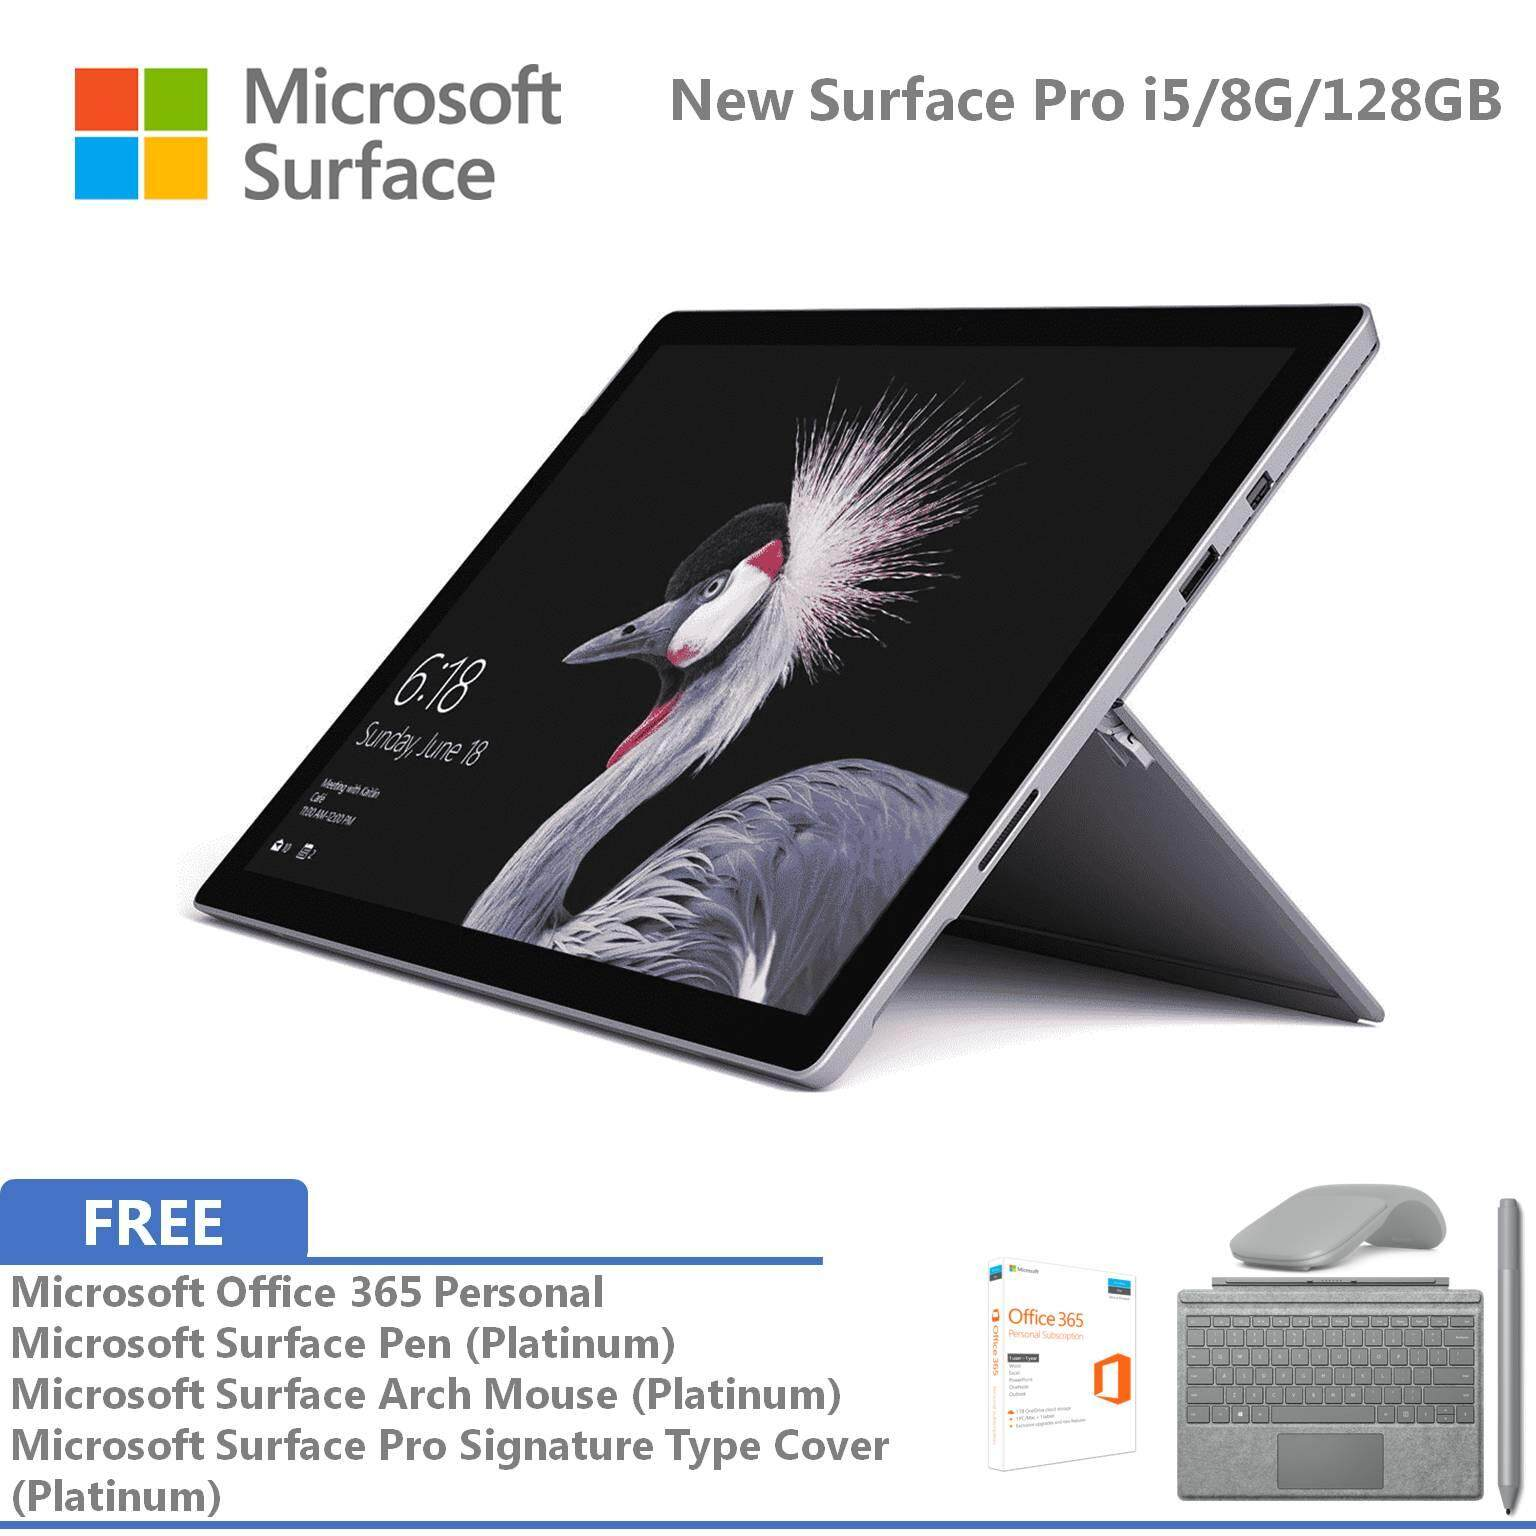 Microsoft New Surface Pro - 128GB / Intel Core i5 - 8GB RAM FOC Signature Type Cover + Pen + Arch Mouse + Office 365 Personal Malaysia